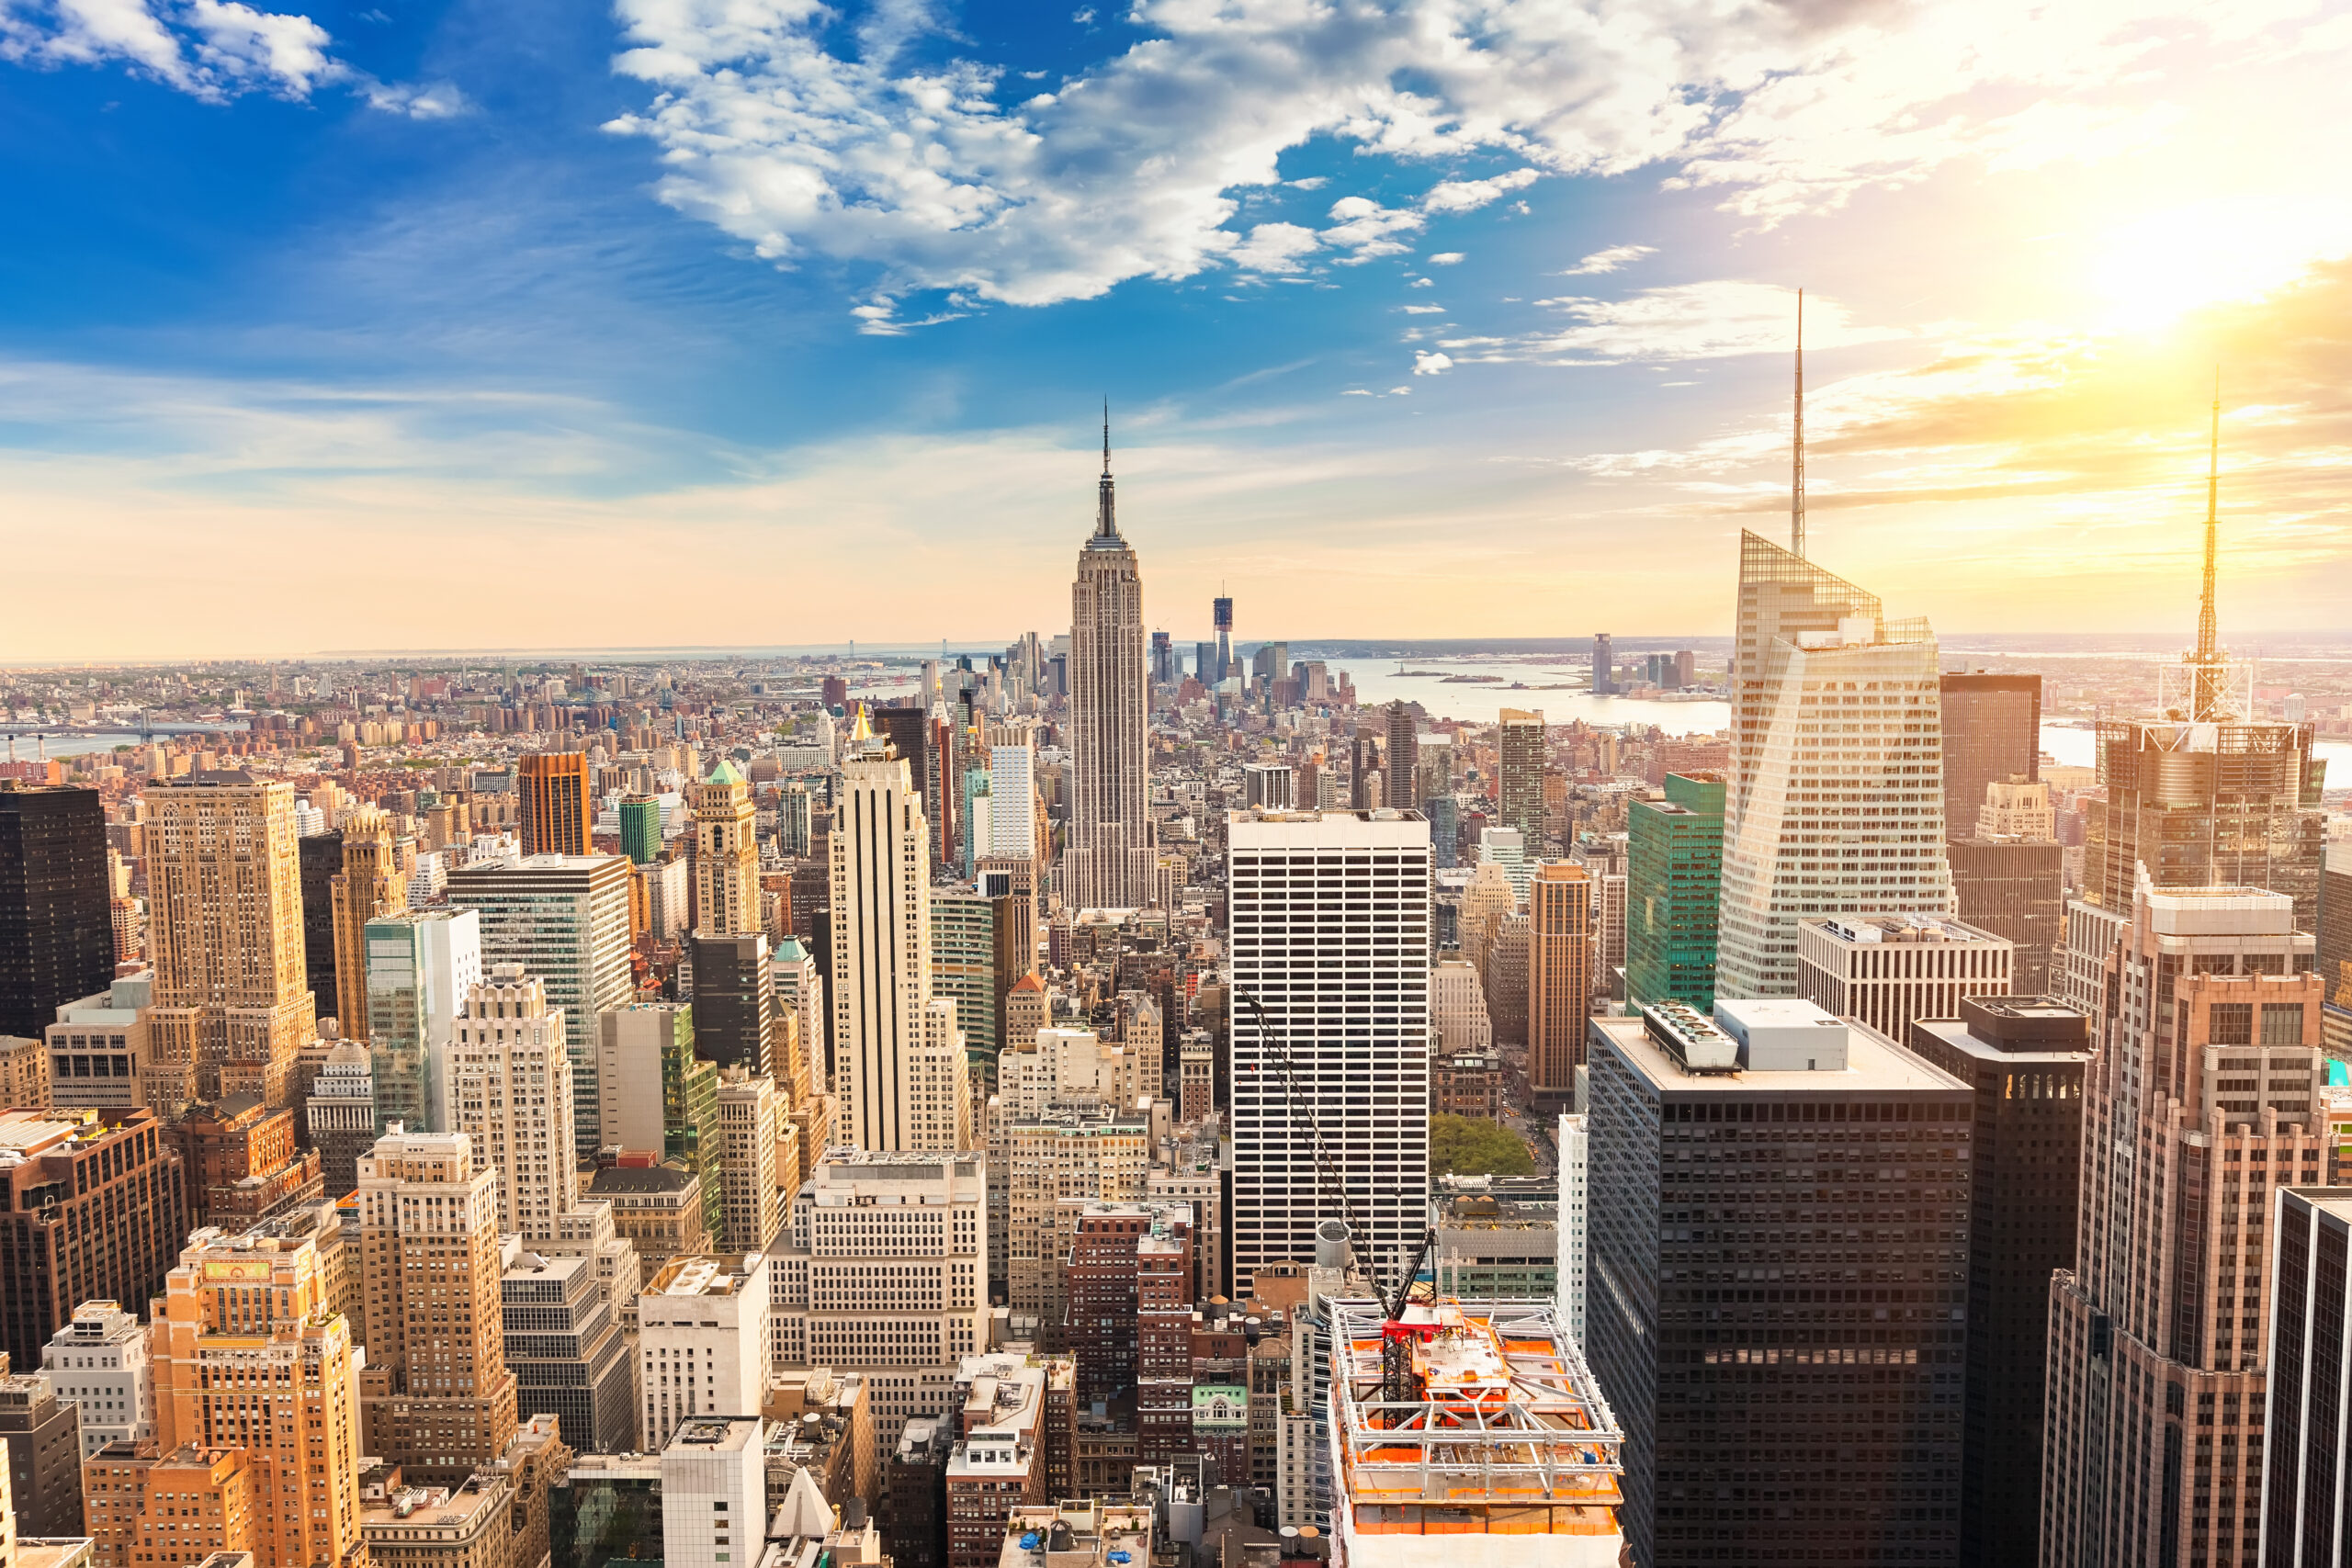 Bradford Allen Expands Brokerage Services to New York City, Appoints Glenn Isaacson as Regional President